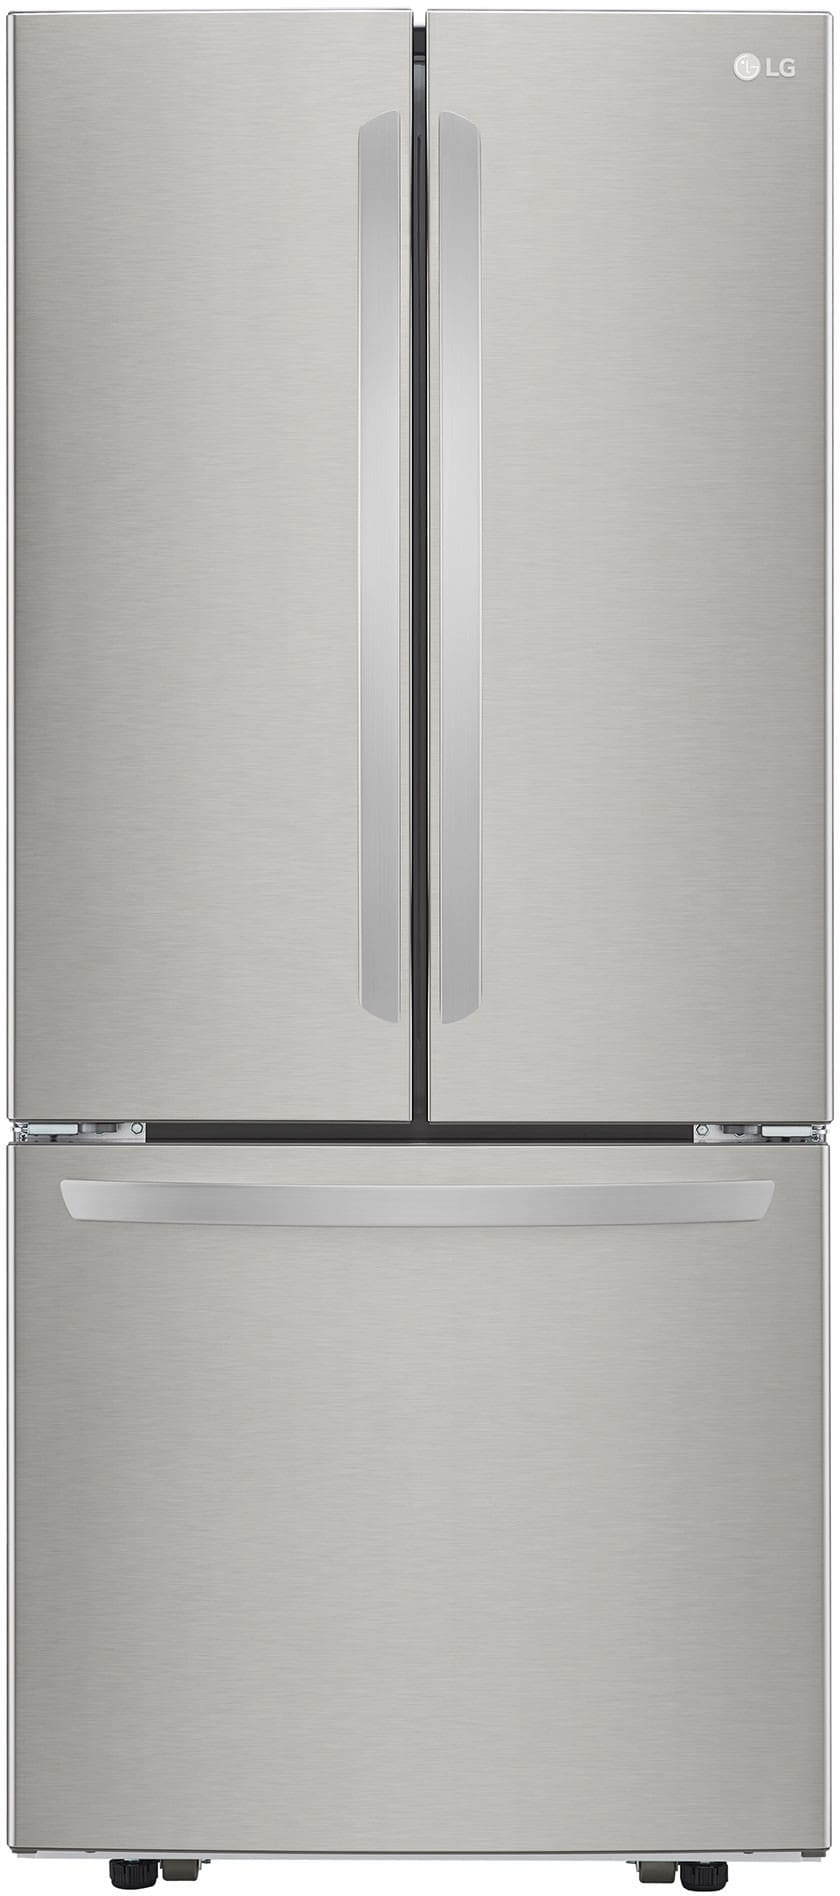 LG LFCS22520S 30 Inch French Door Refrigerator with Glide N\' Serve ...